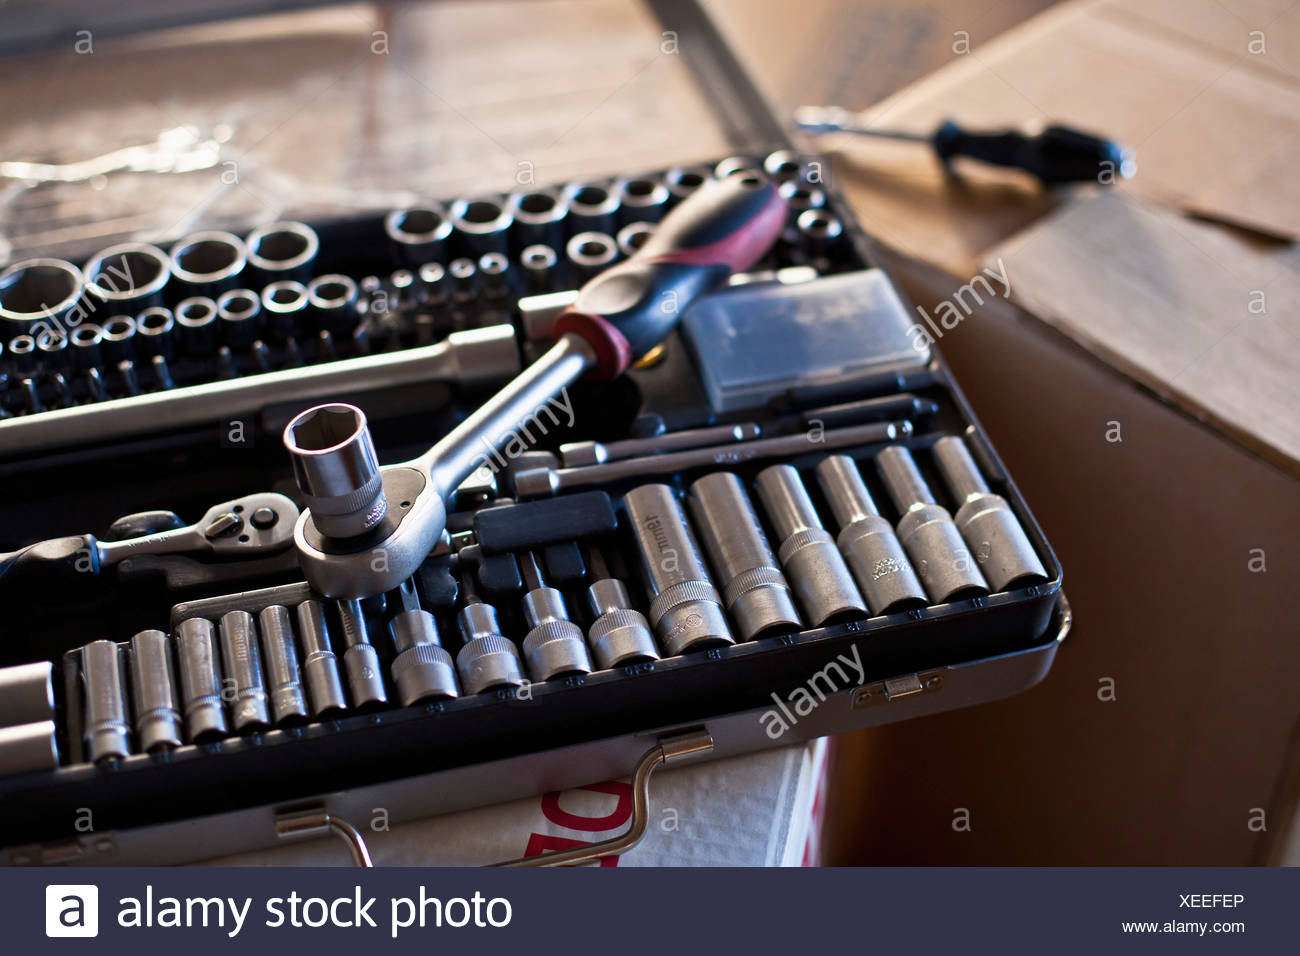 Tool box on cardboard box - Stock Image